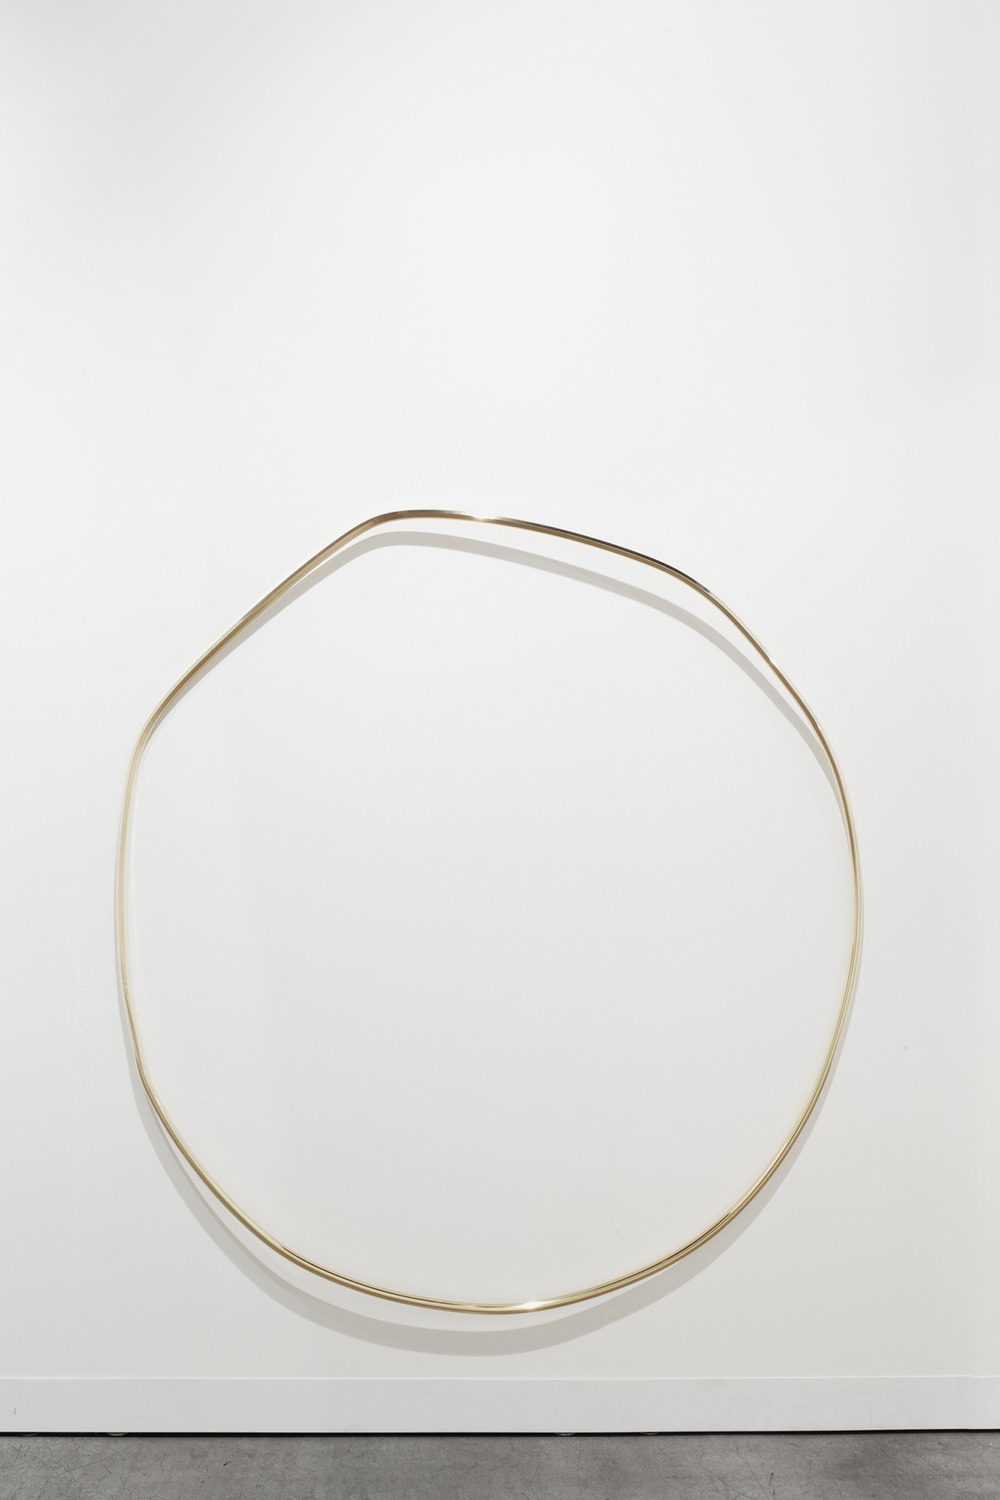 New Moon, 2013, Brass, 147 x 140 x 16 cm